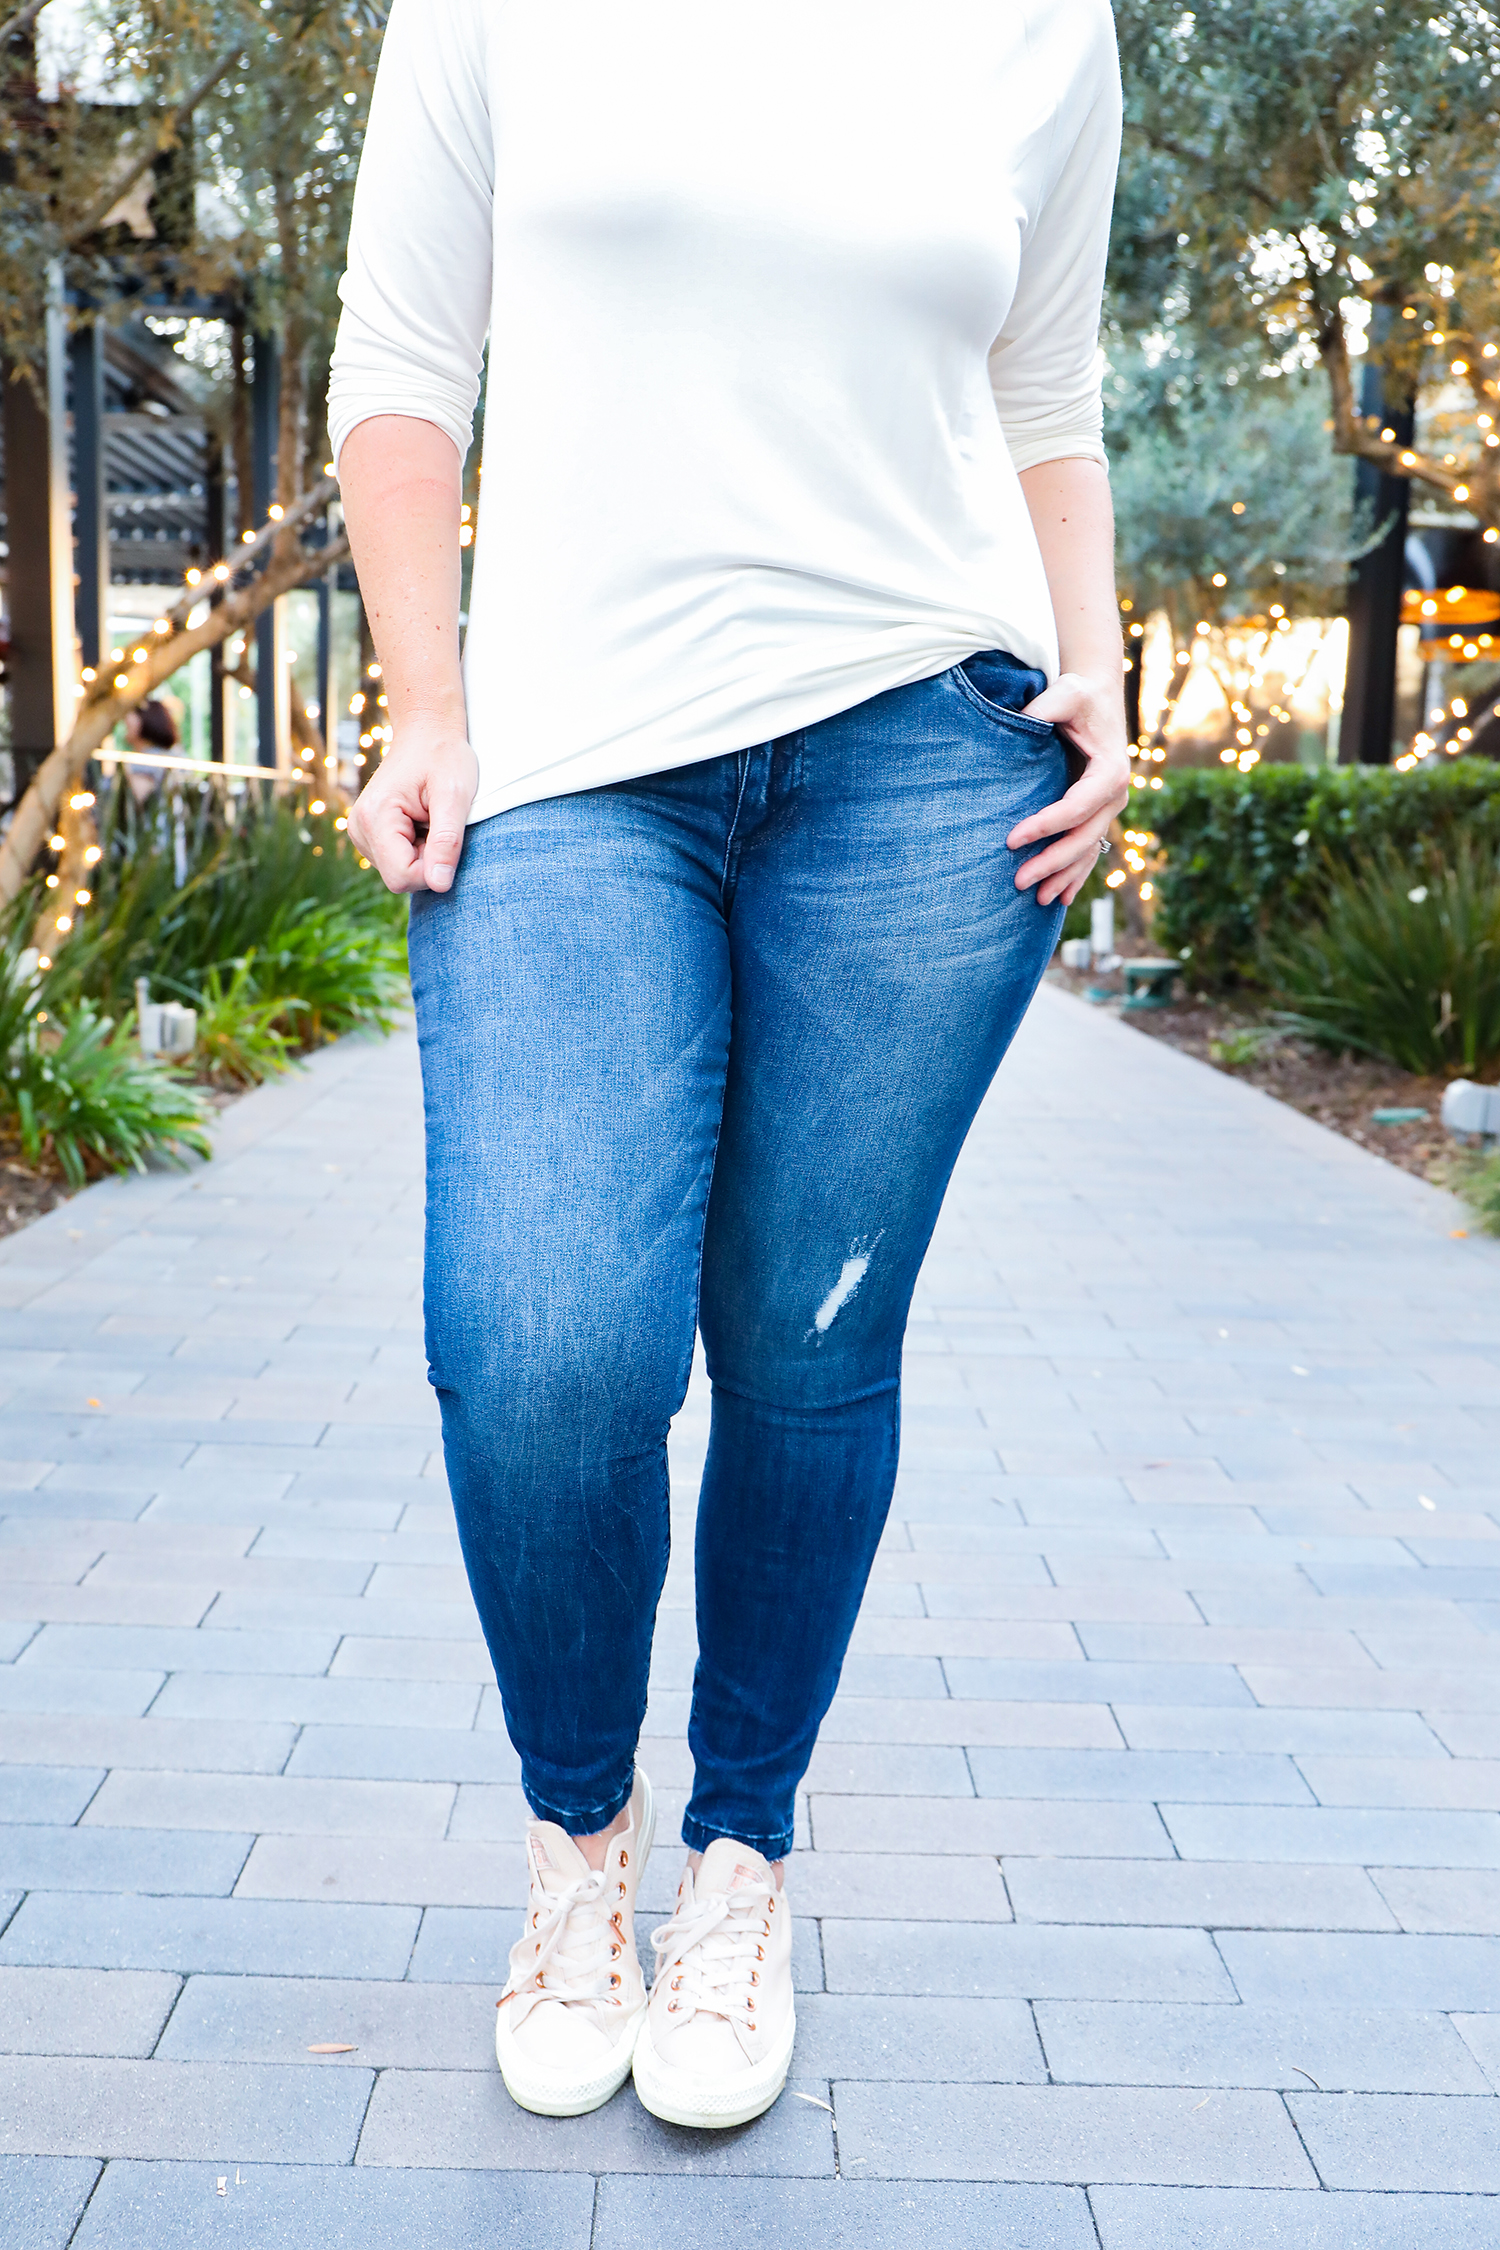 On the hunt for light denim skinny jeans? These fit like a DREAM!